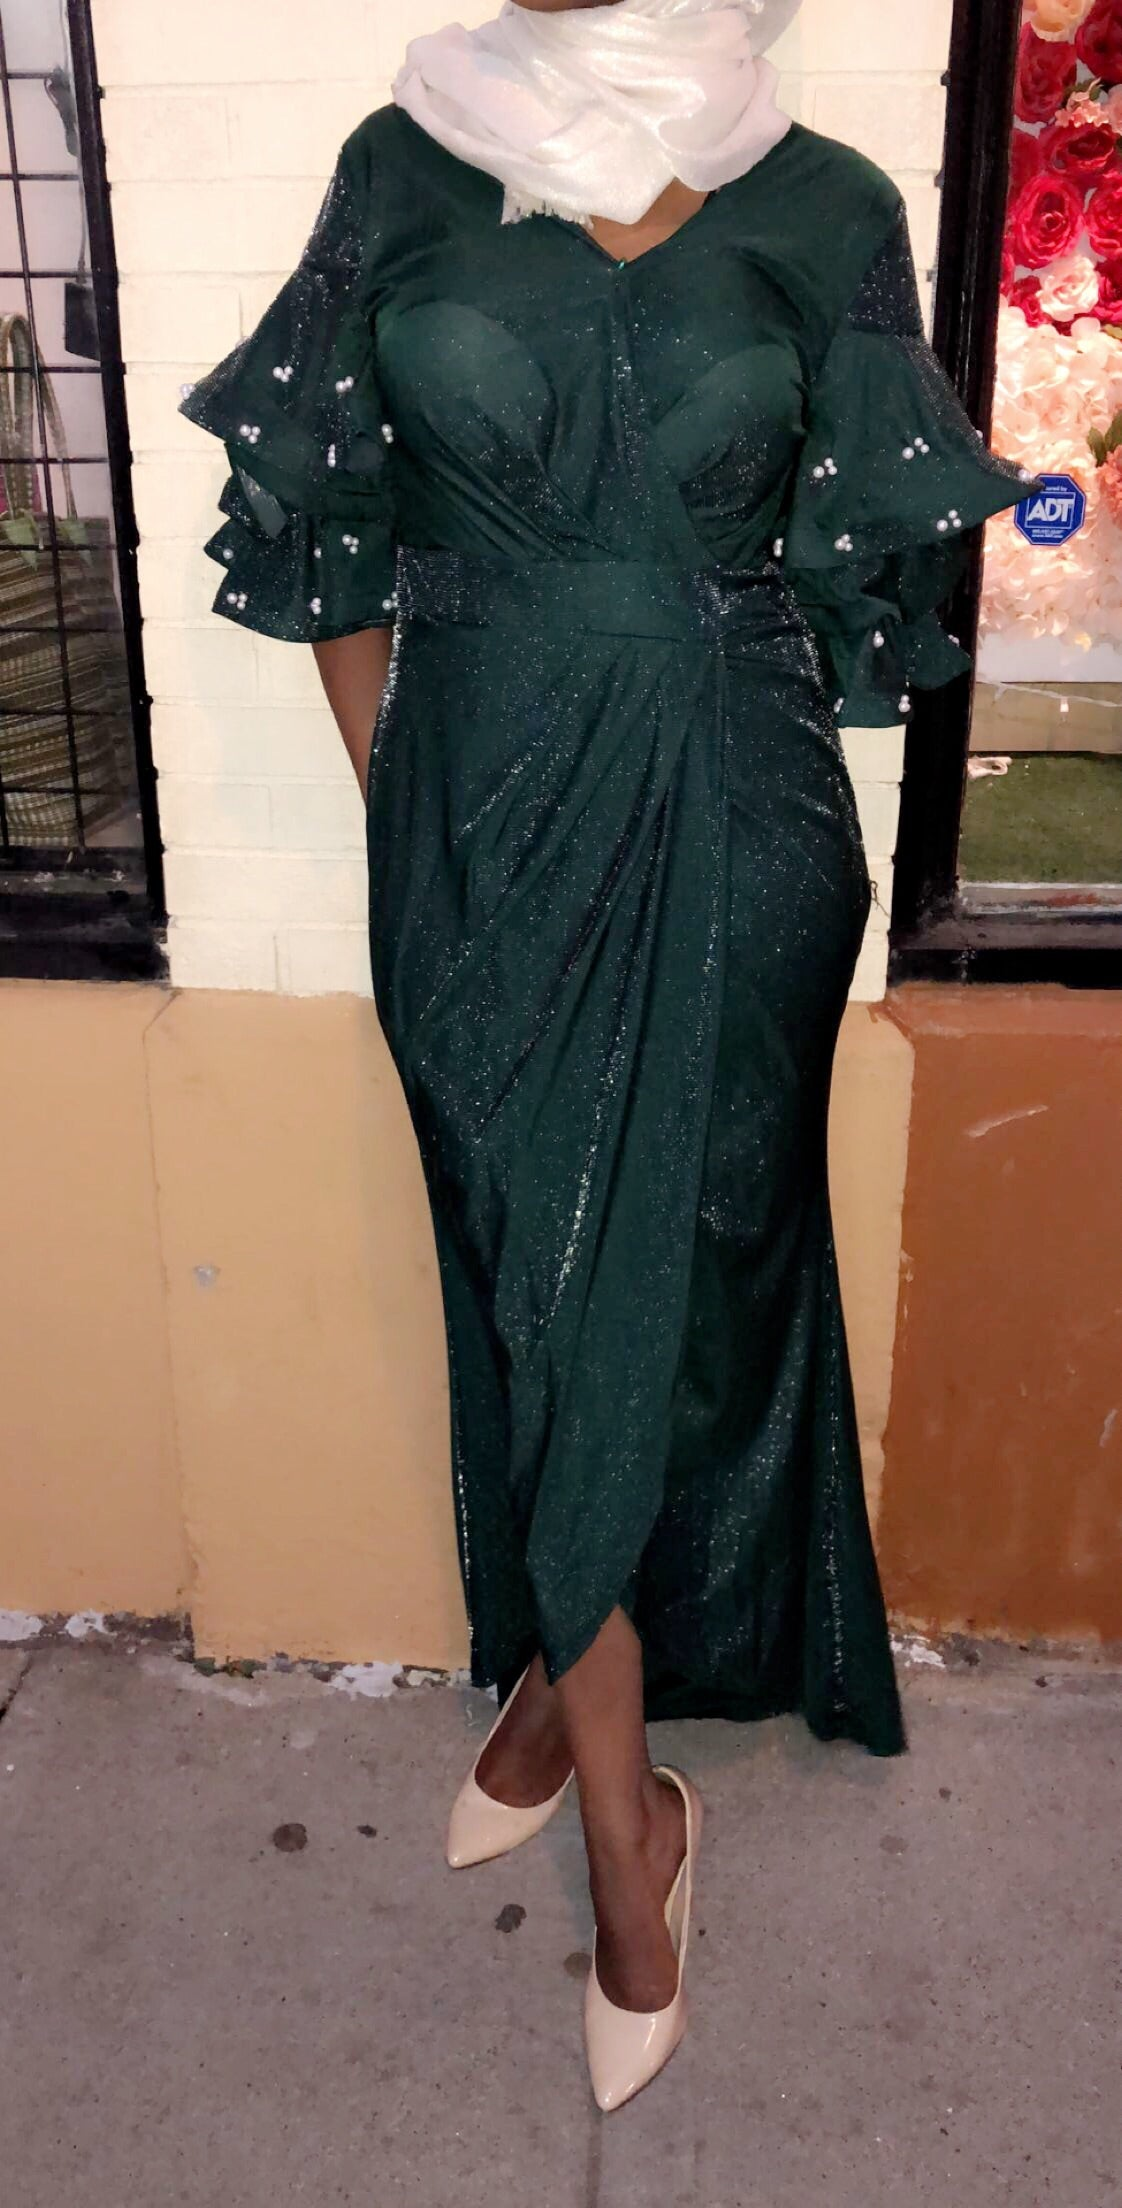 Vintage Pearls Evening Dress - Green